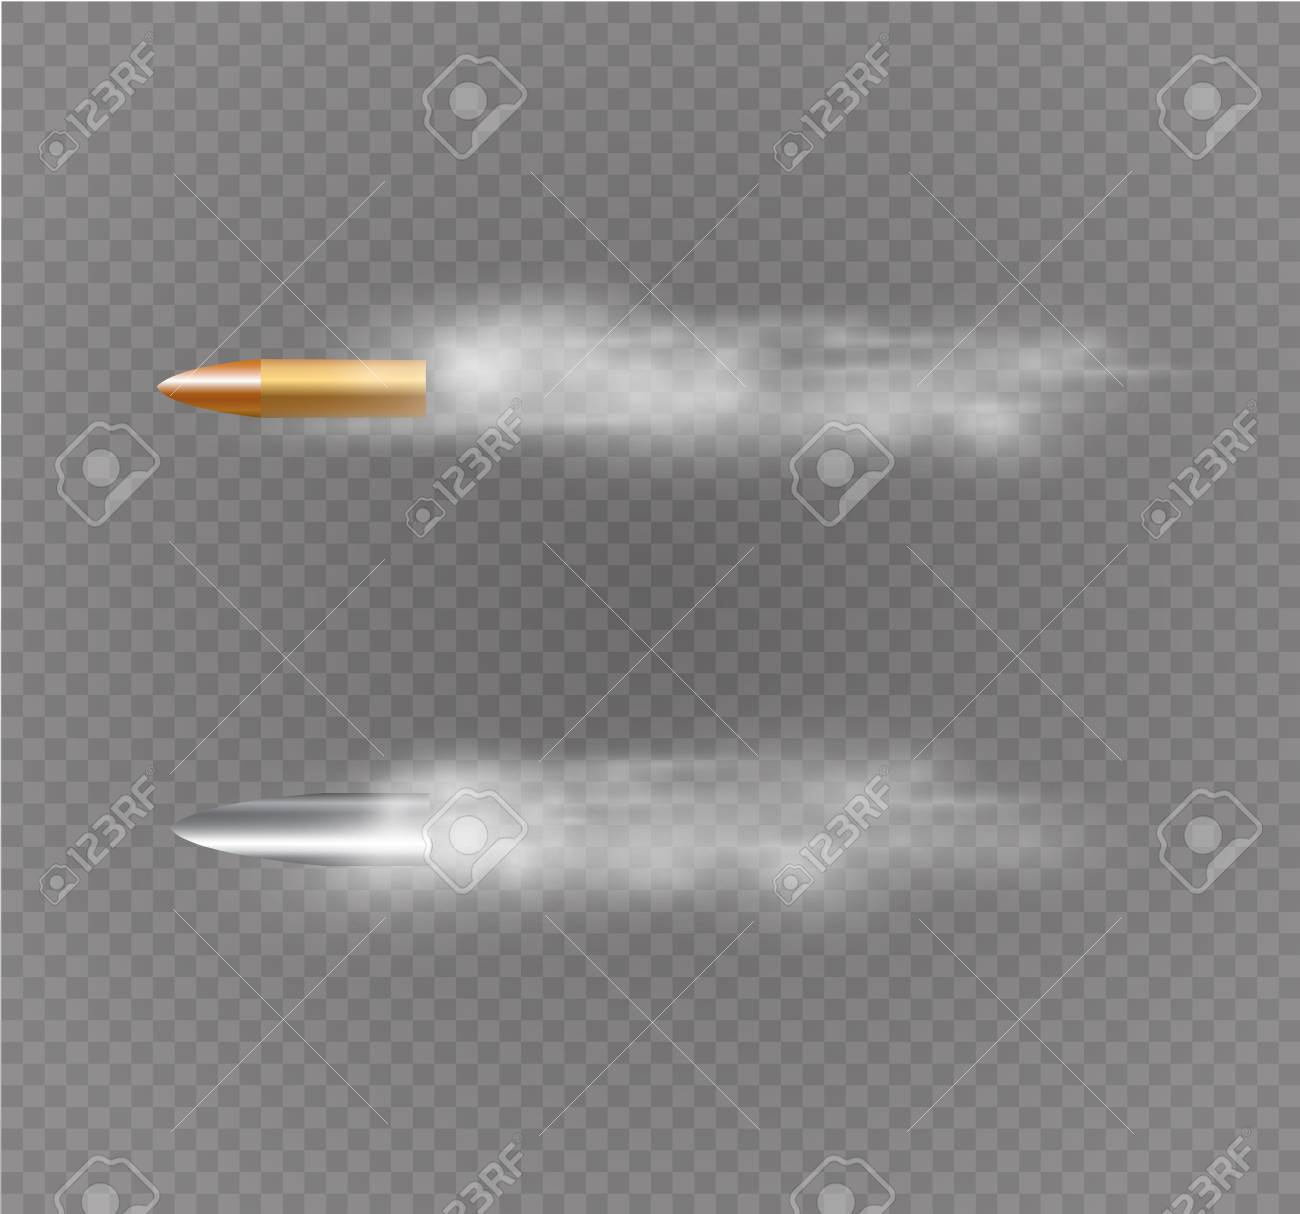 Flying bullet with dust trail. Isolated on black transparent background. Vector illustration. - 104737540